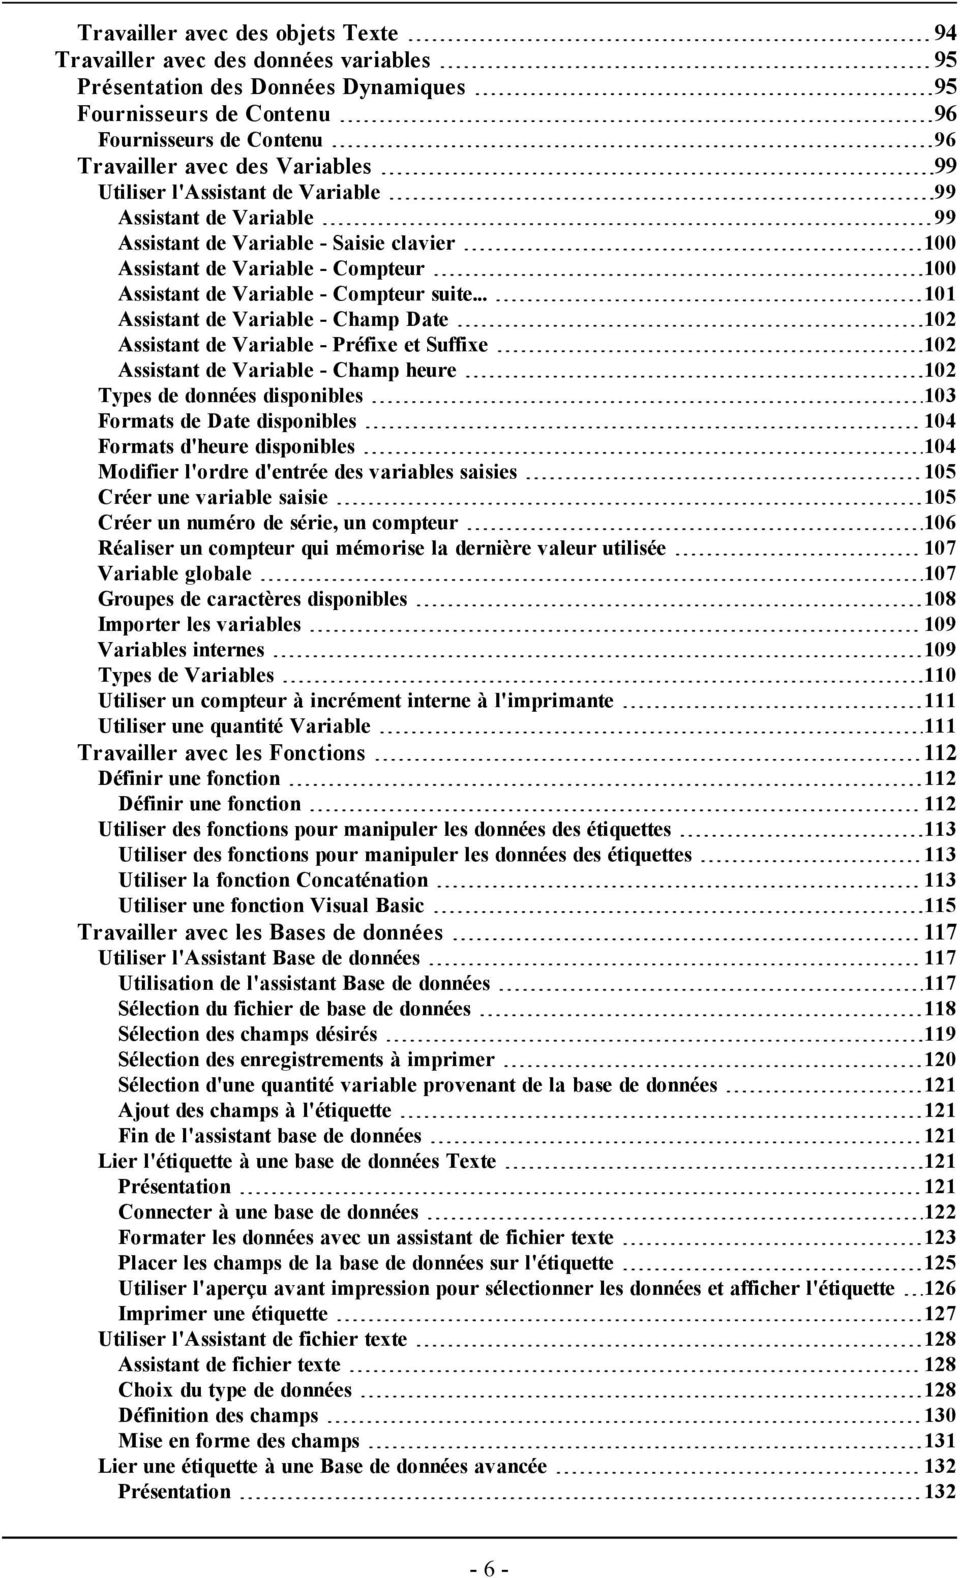 .. 101 Assistant de Variable - Champ Date 102 Assistant de Variable - Préfixe et Suffixe 102 Assistant de Variable - Champ heure 102 Types de données disponibles 103 Formats de Date disponibles 104